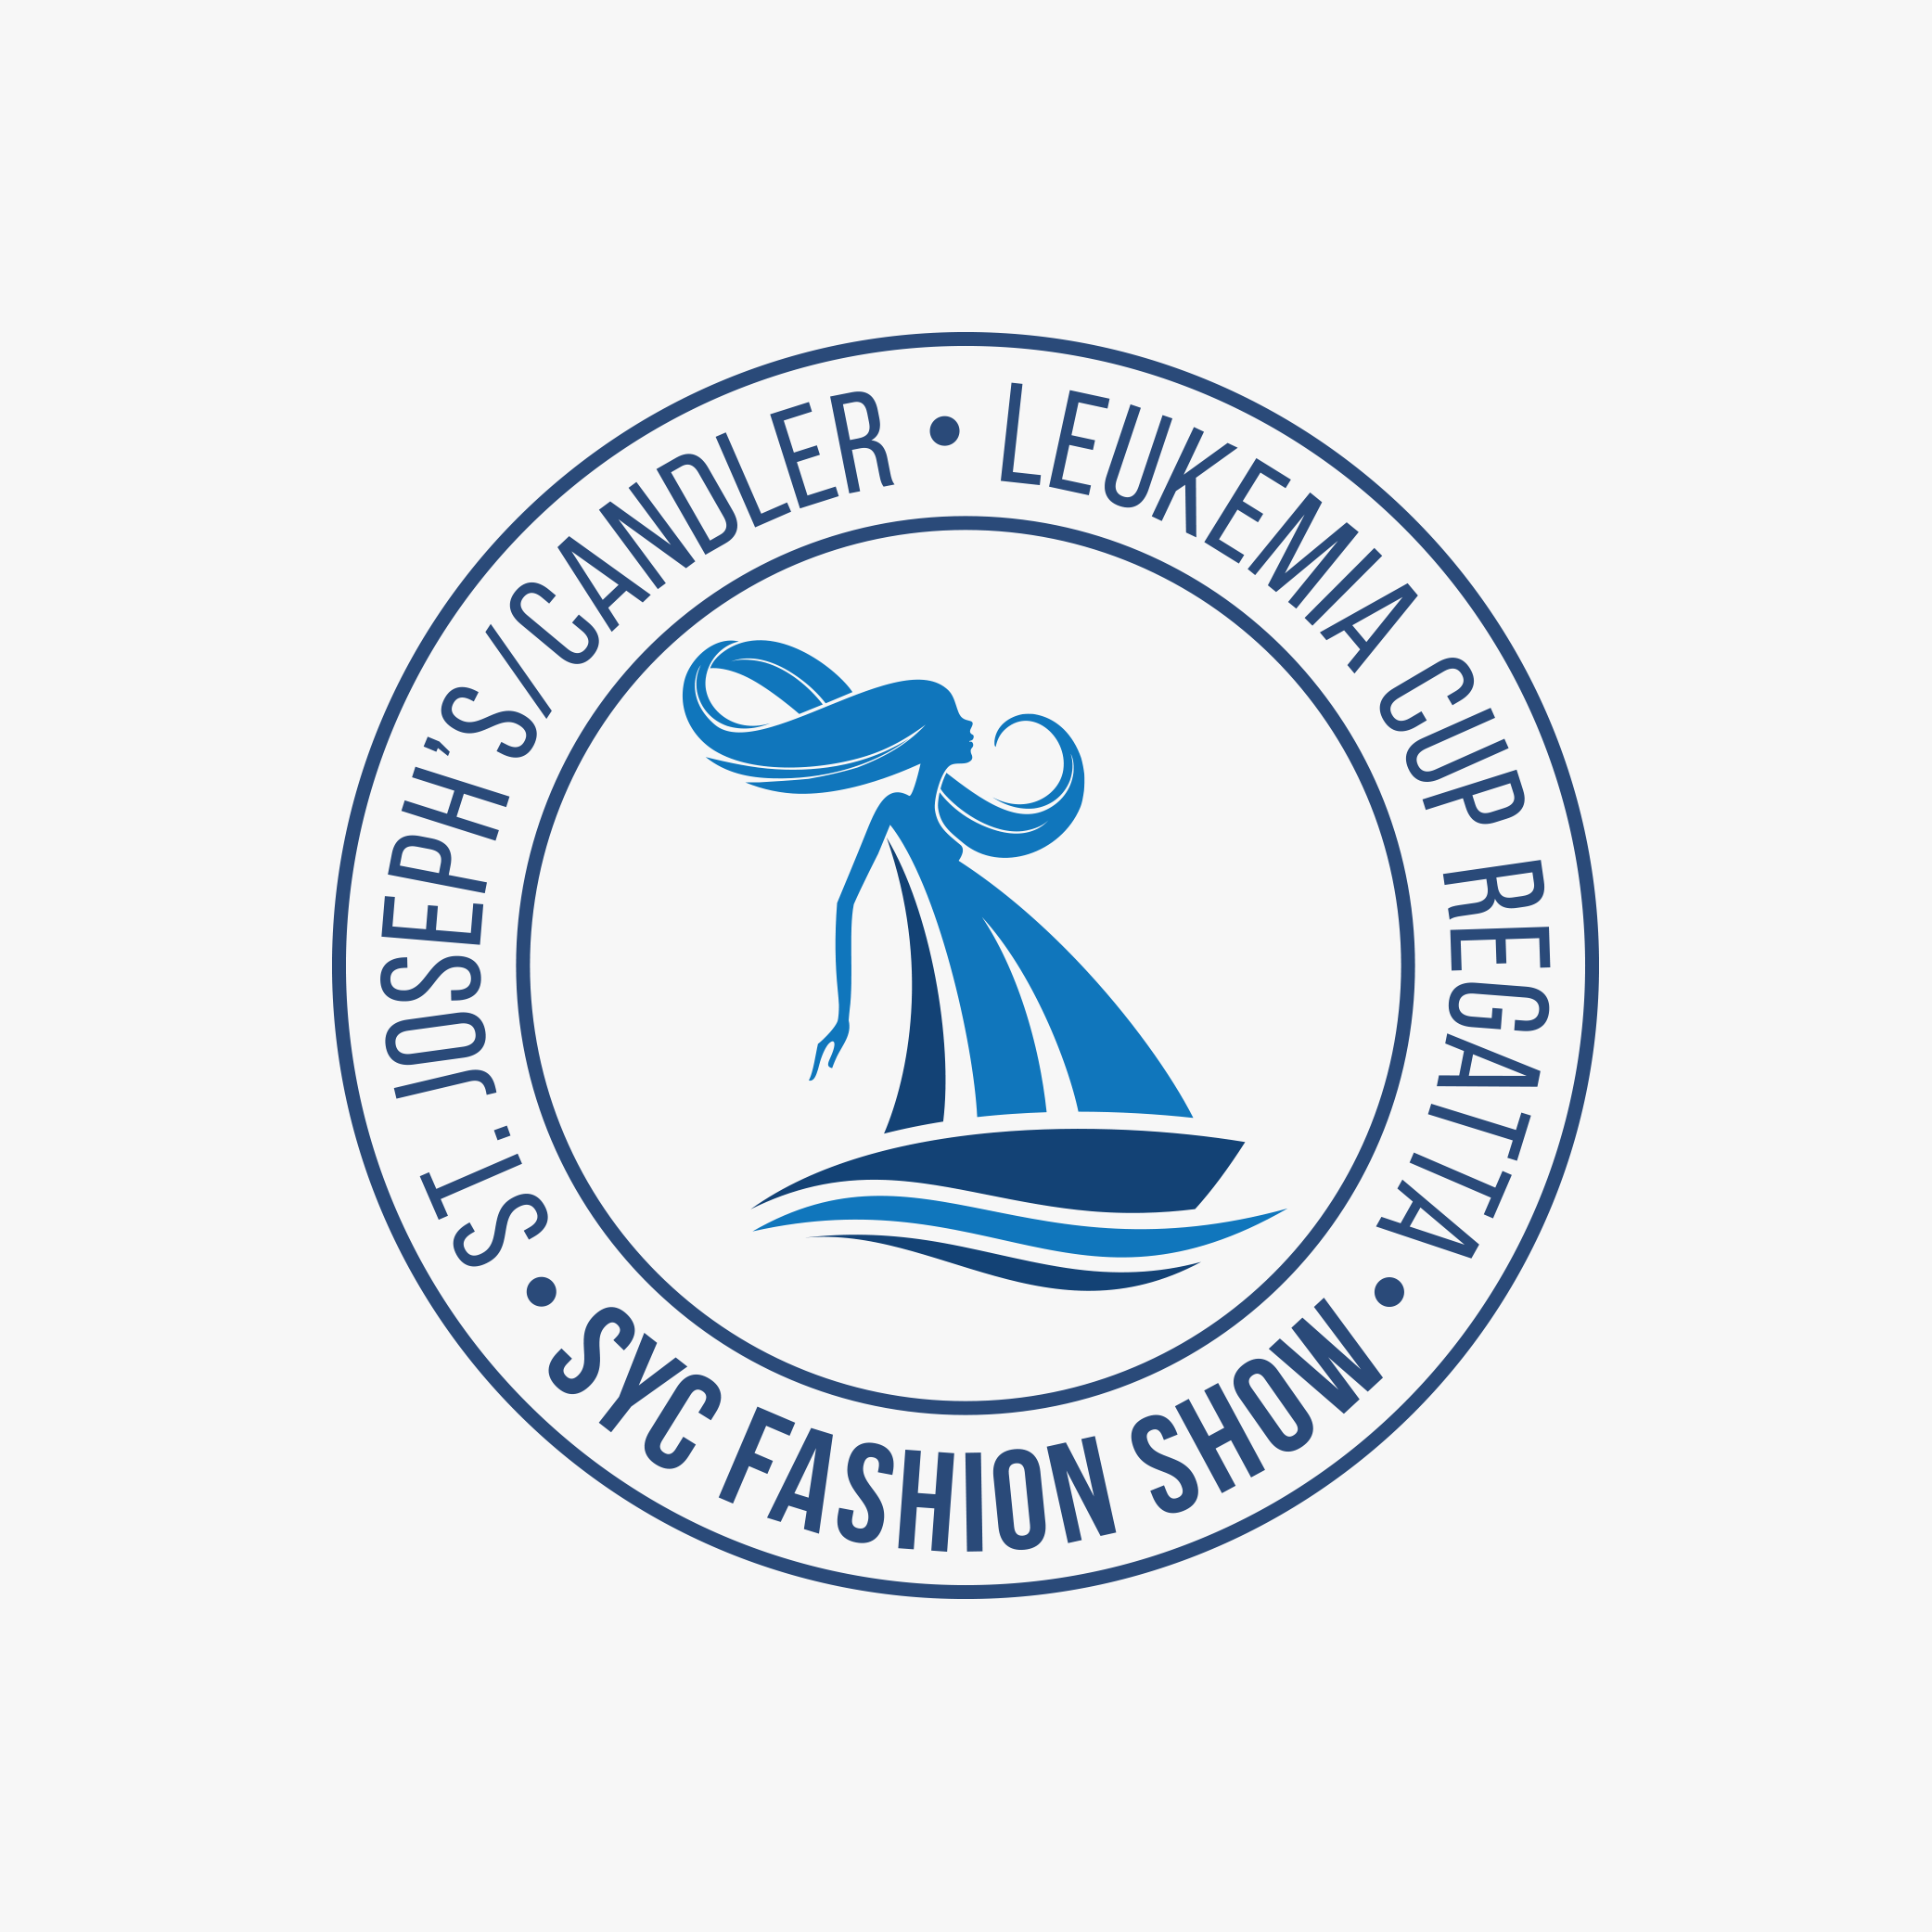 Logo Design | Leukemia Cup Fashion Show